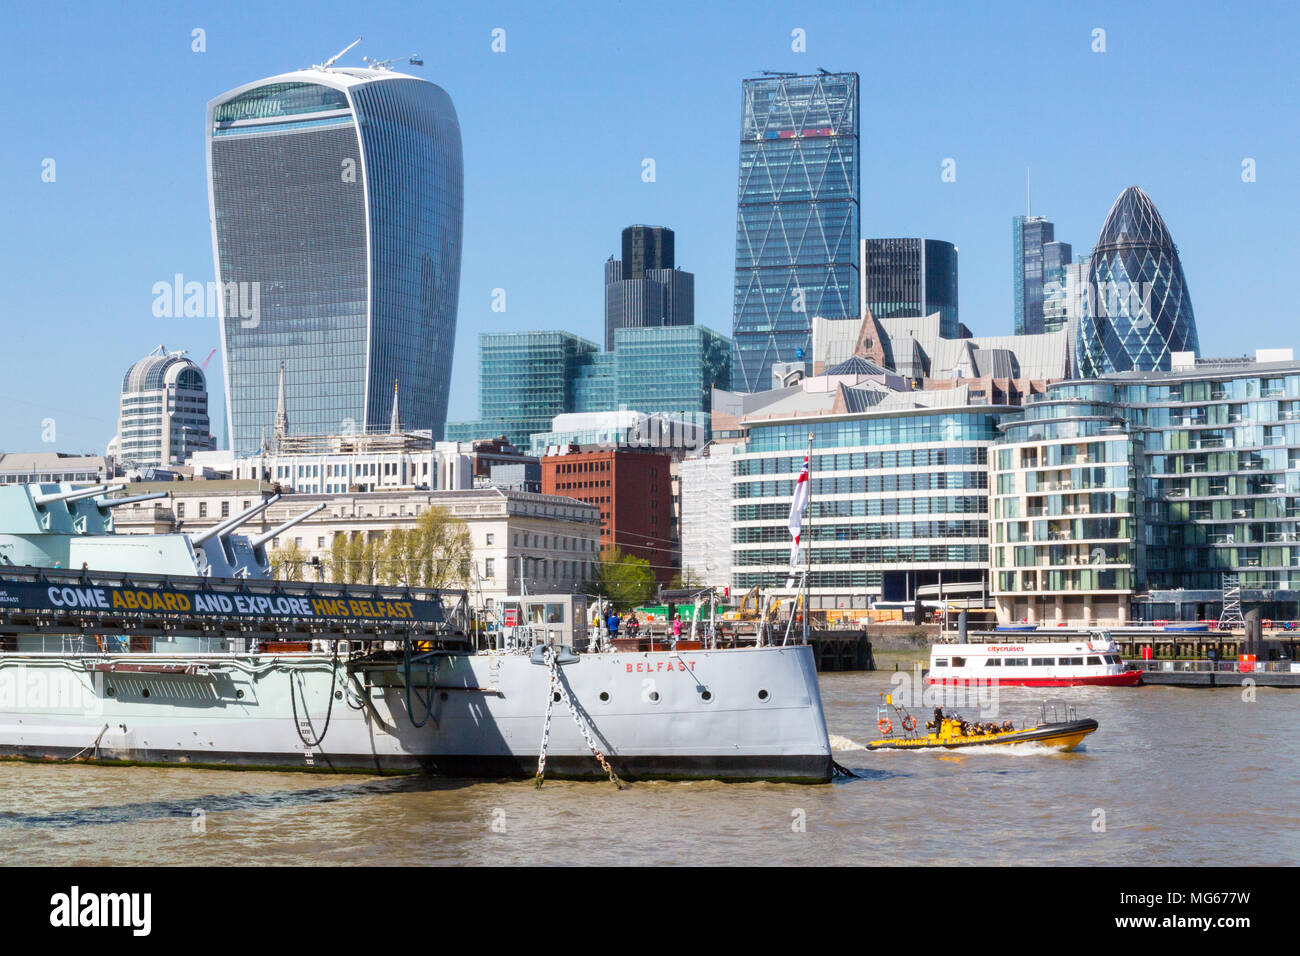 London, United Kingdom - April 23, 2015: A sunny spring day in  London from the Southbank you can see several of London's iconic buildings. Stock Photo